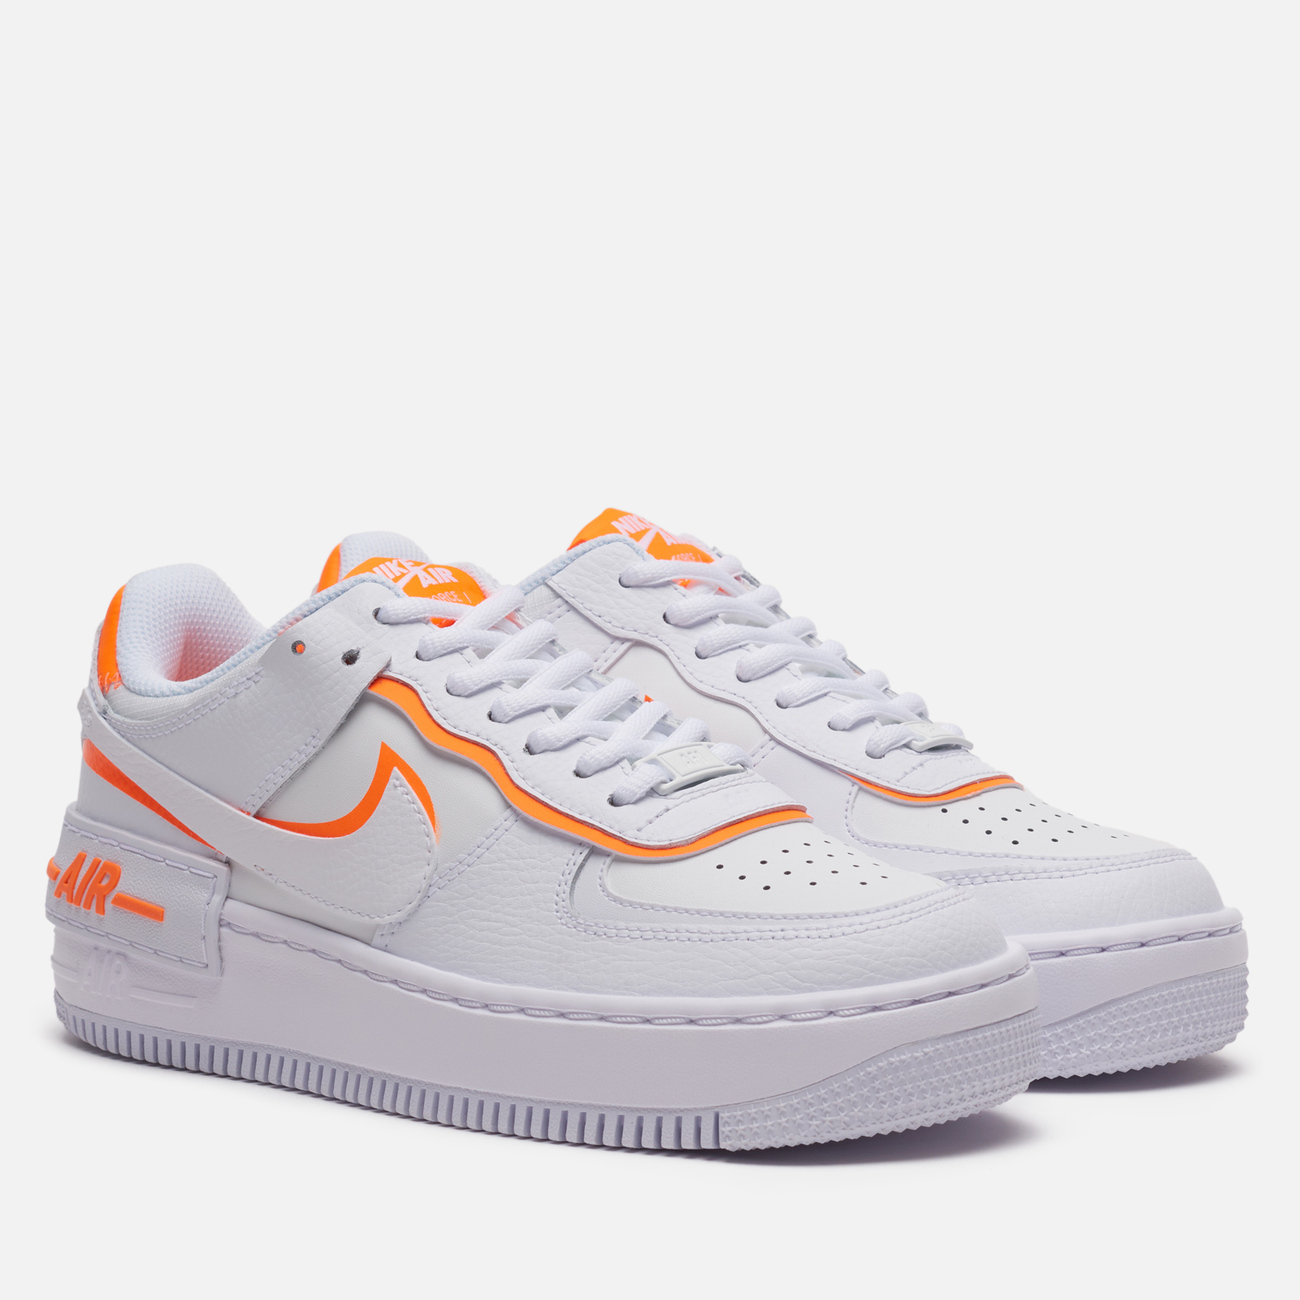 Женские кроссовки Nike Air Force 1 Shadow White/Summit White/Total Orange